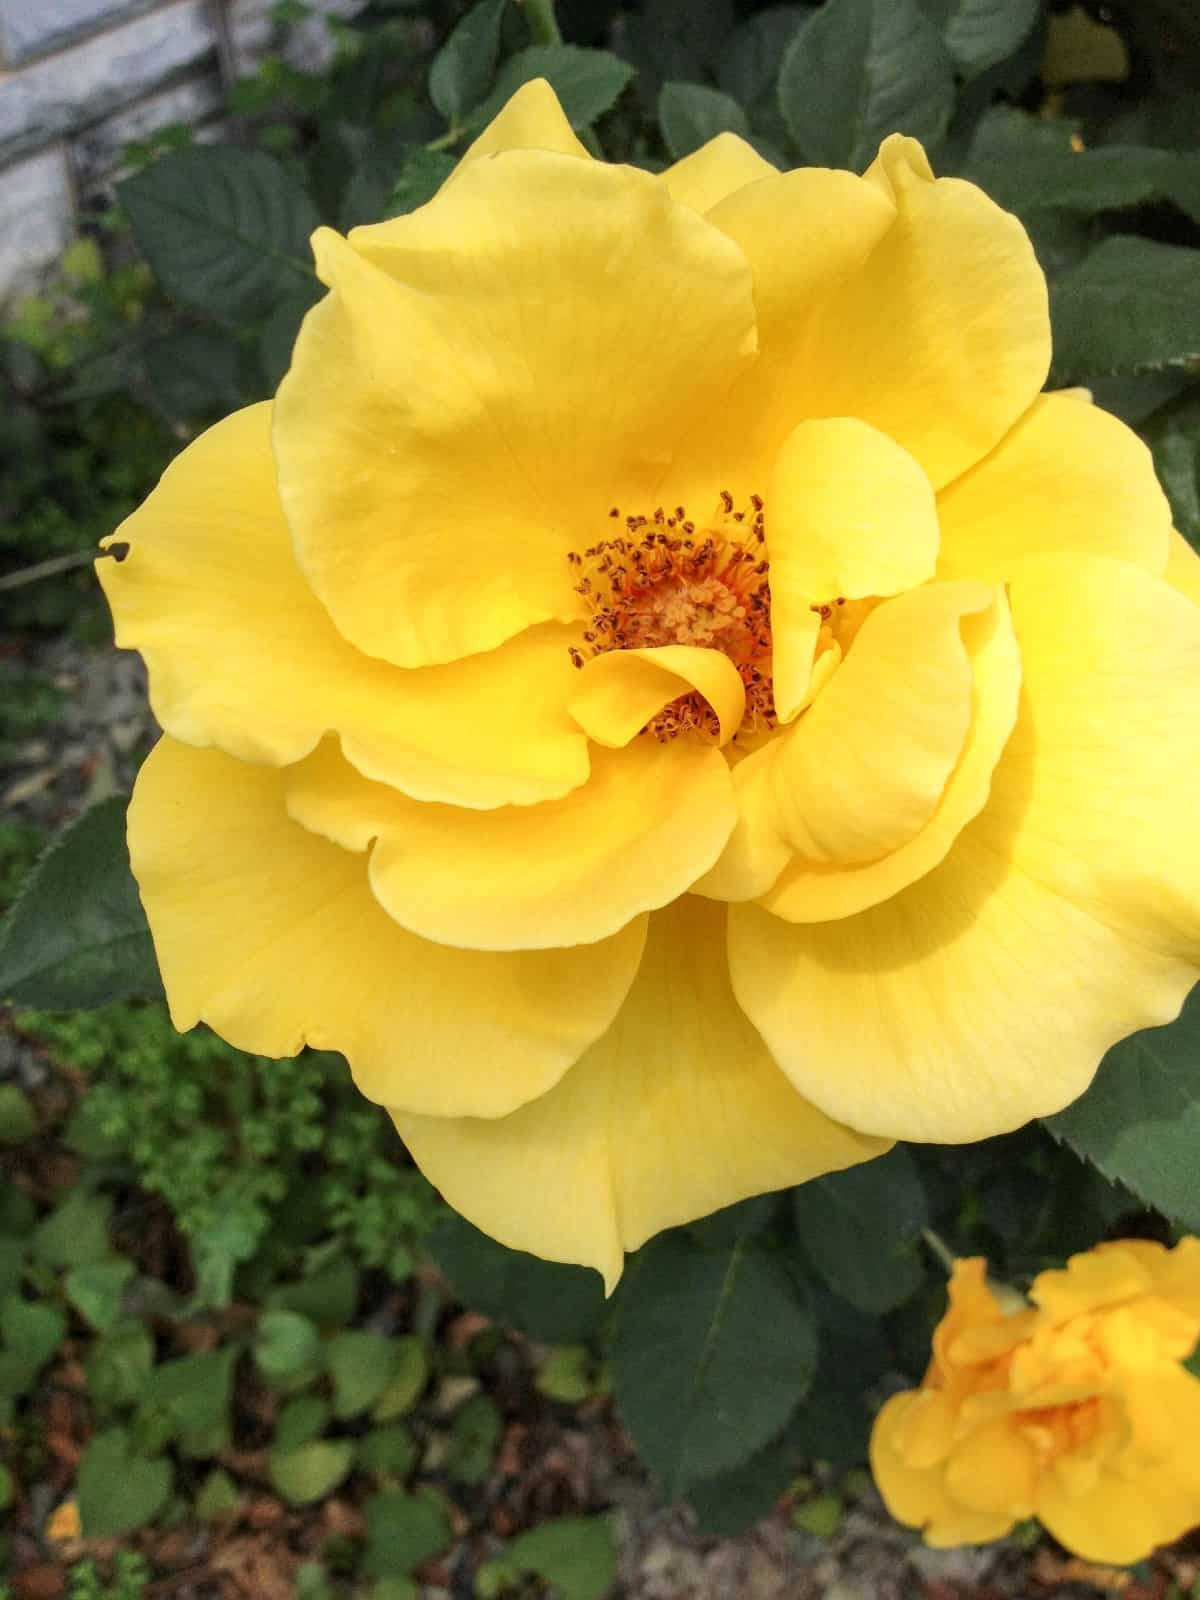 Not only is the sunny knock out rose disease resistant but it also has a pleasant fragrance.